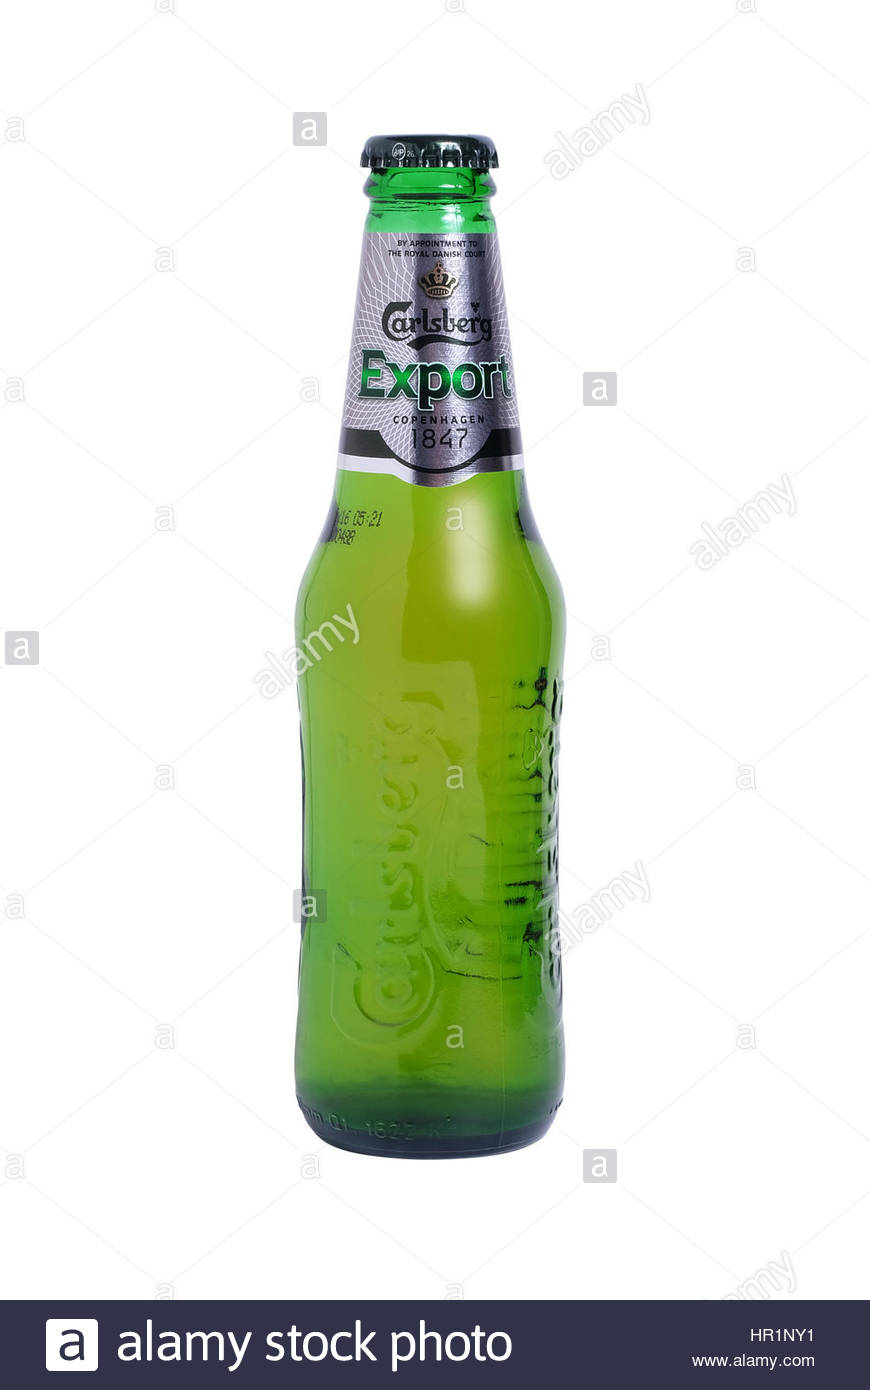 Leeds, United Kingdom - April 14th, 2015: Bottle of Carlsberg Export lager. A premium strength lager brewed to an - Stock Image